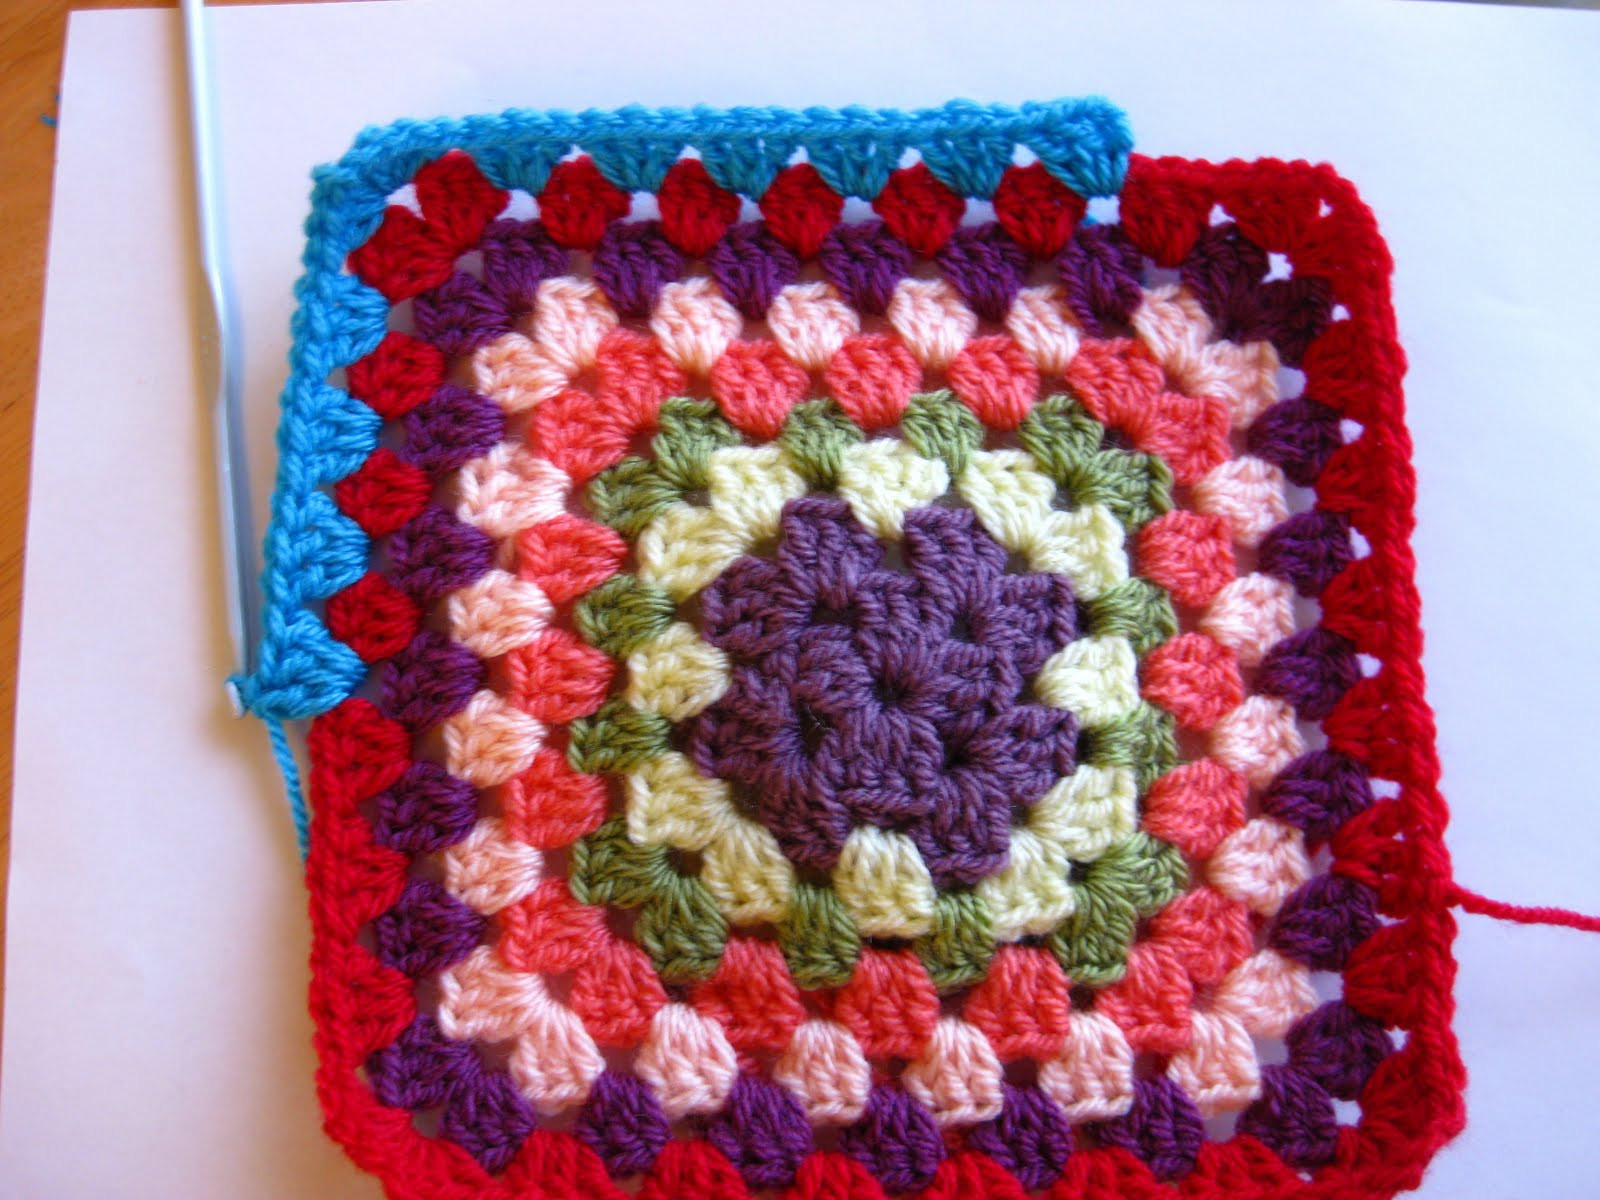 Lovely Bunny Mummy How to Crochet A Granny Square Granny Square for Beginners Of Marvelous 46 Pics Granny Square for Beginners